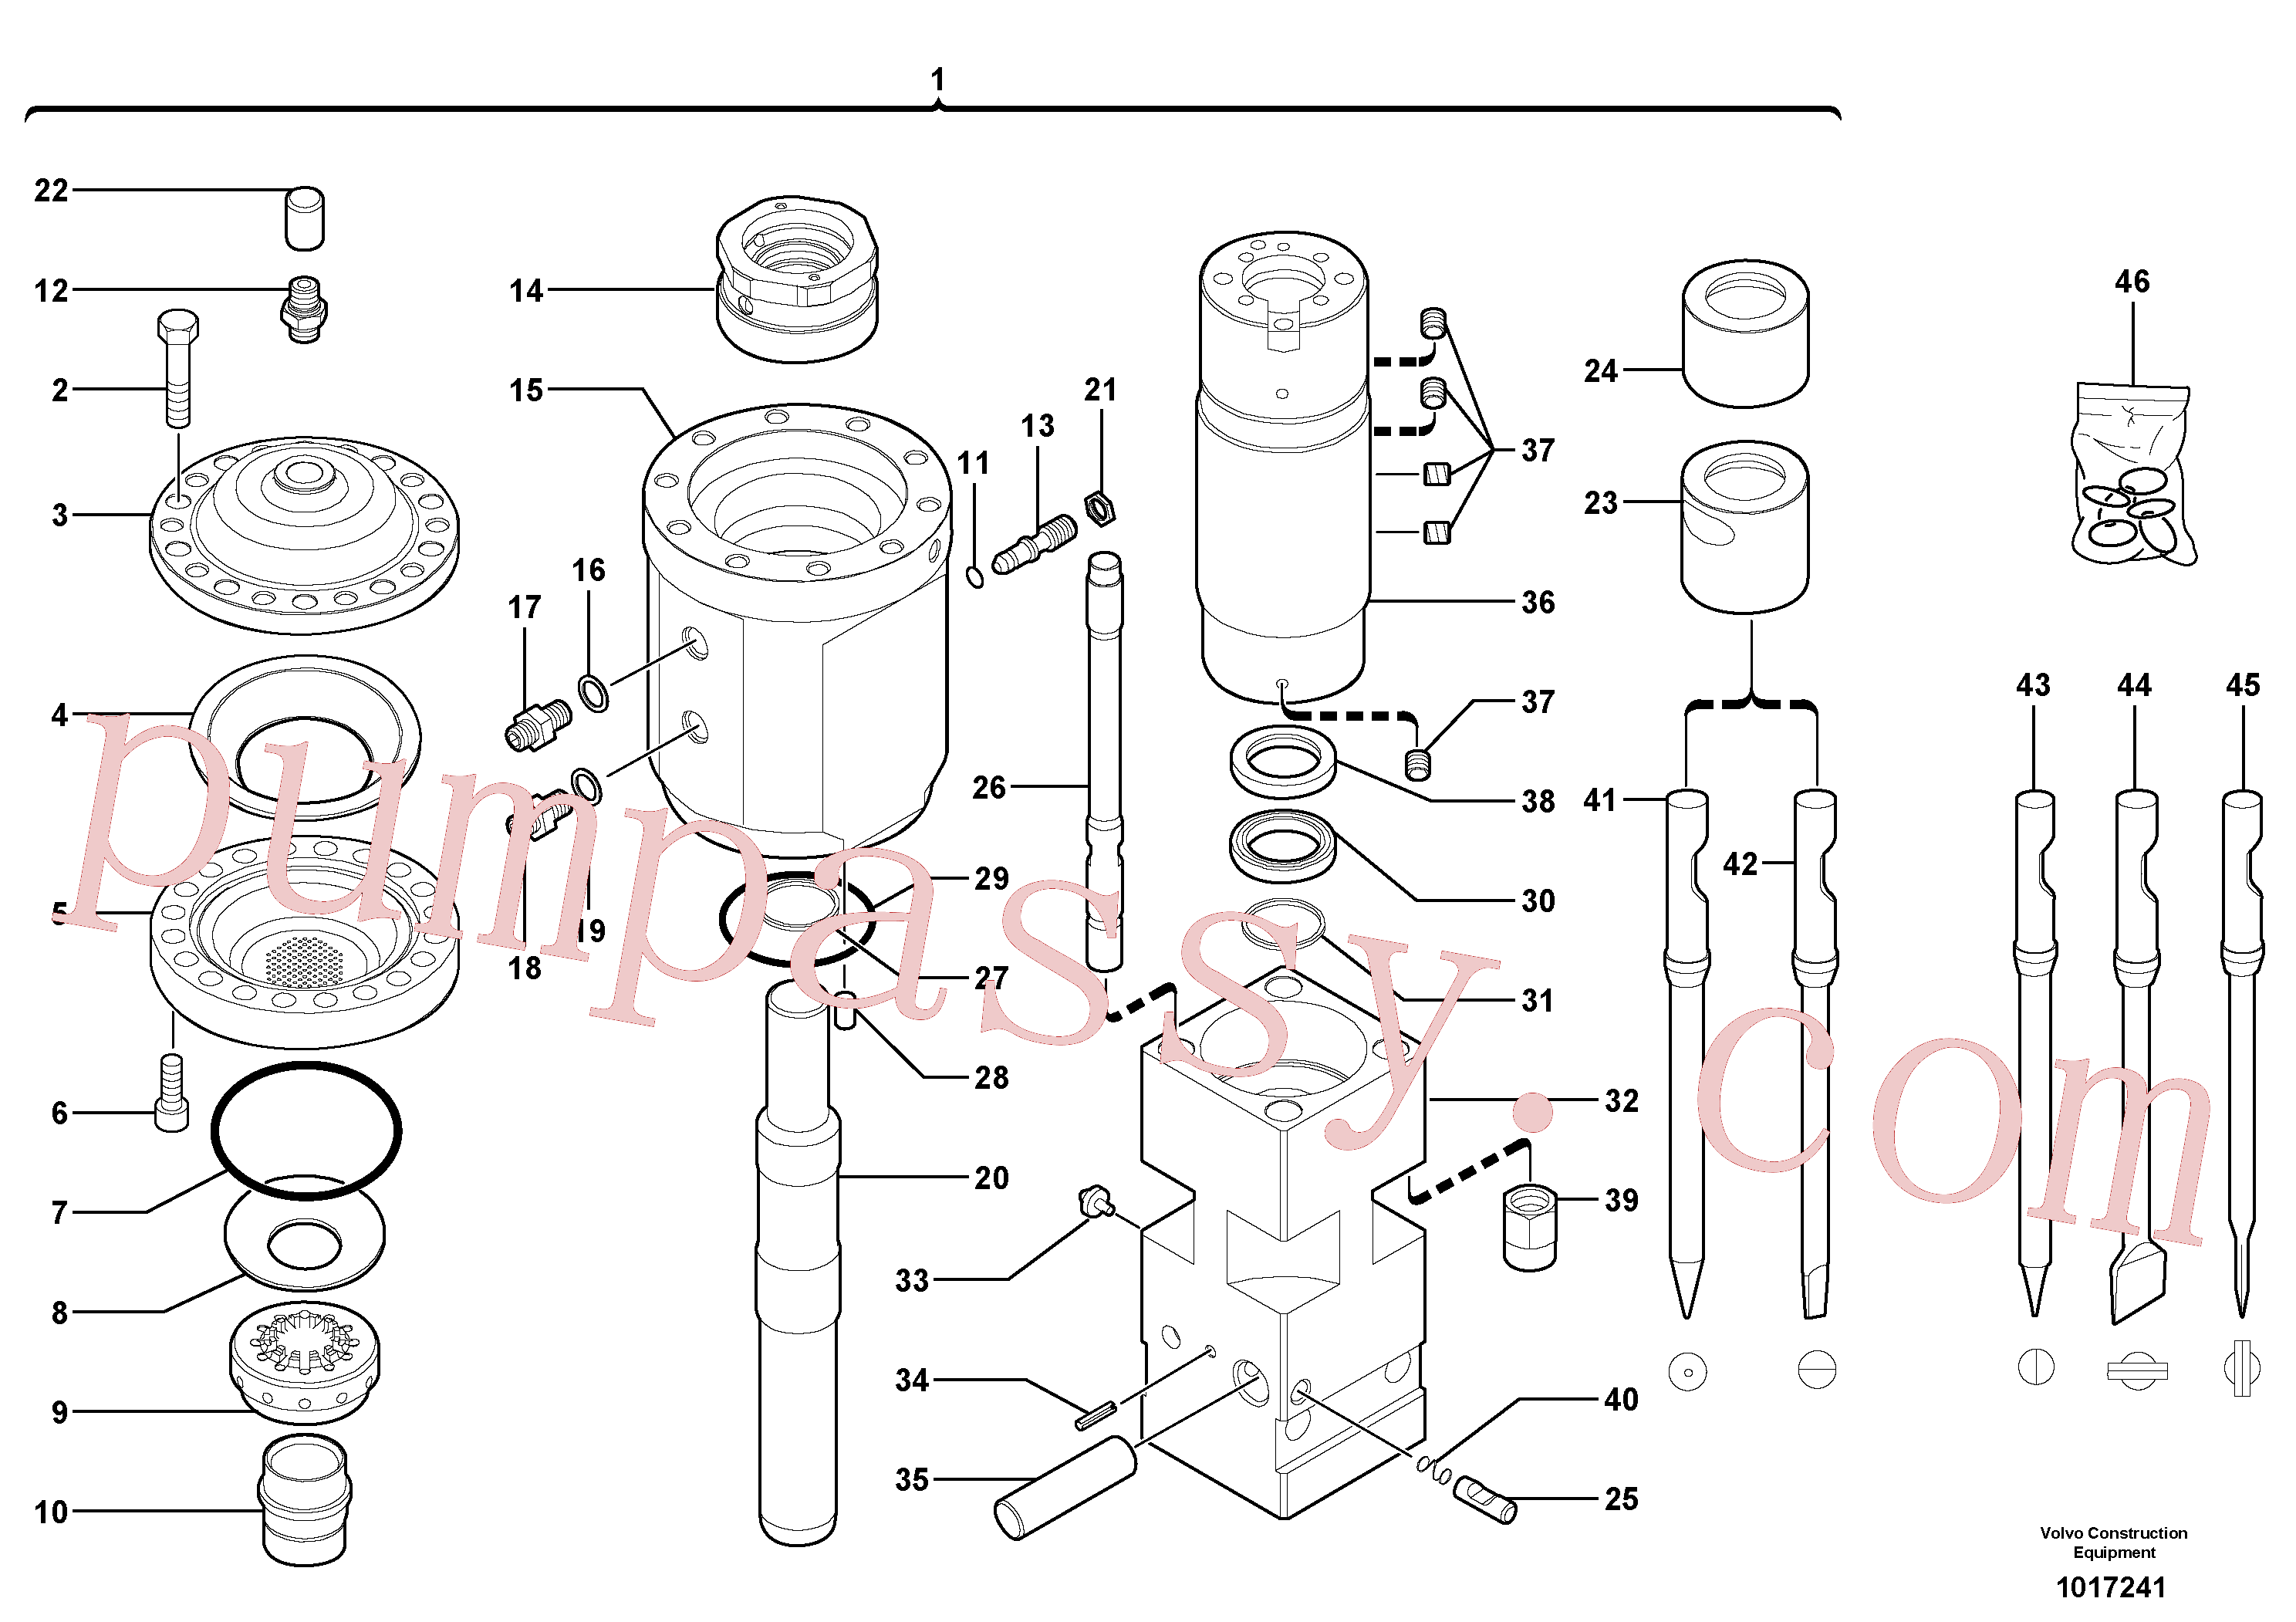 VOE11716166 for Volvo Hammer(1017241 assembly)